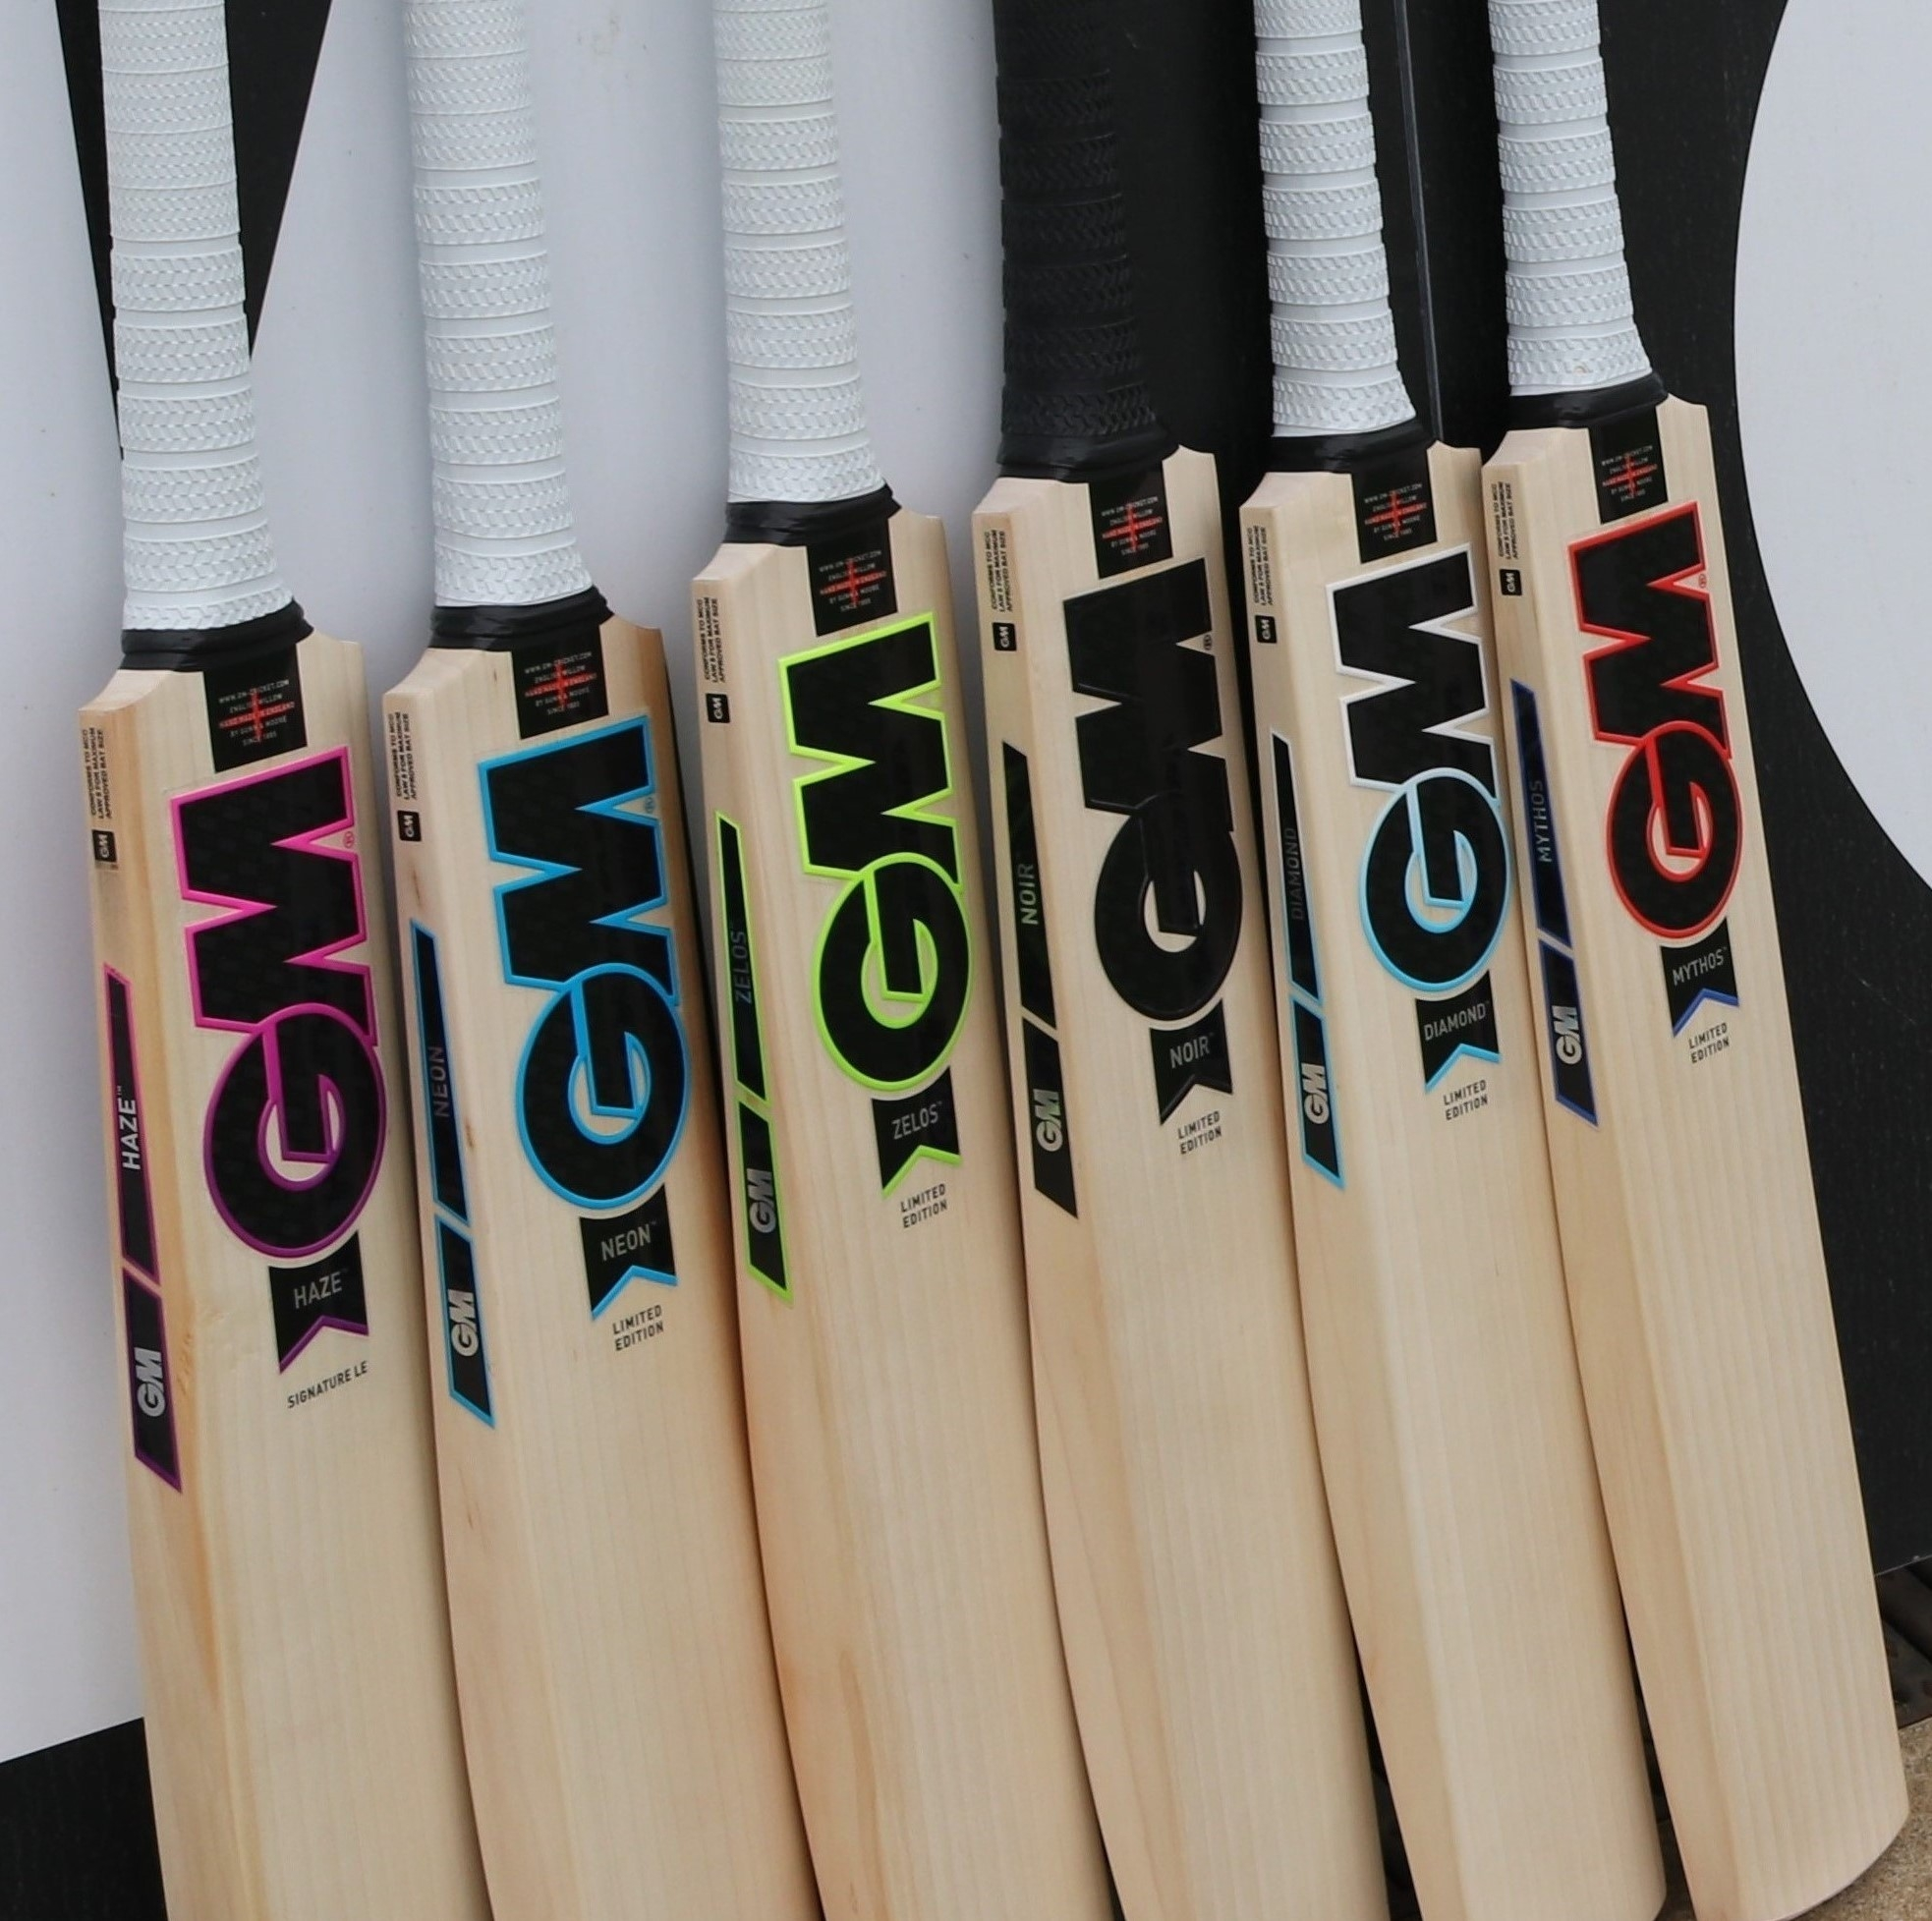 NEW 2019 Cricket Bats